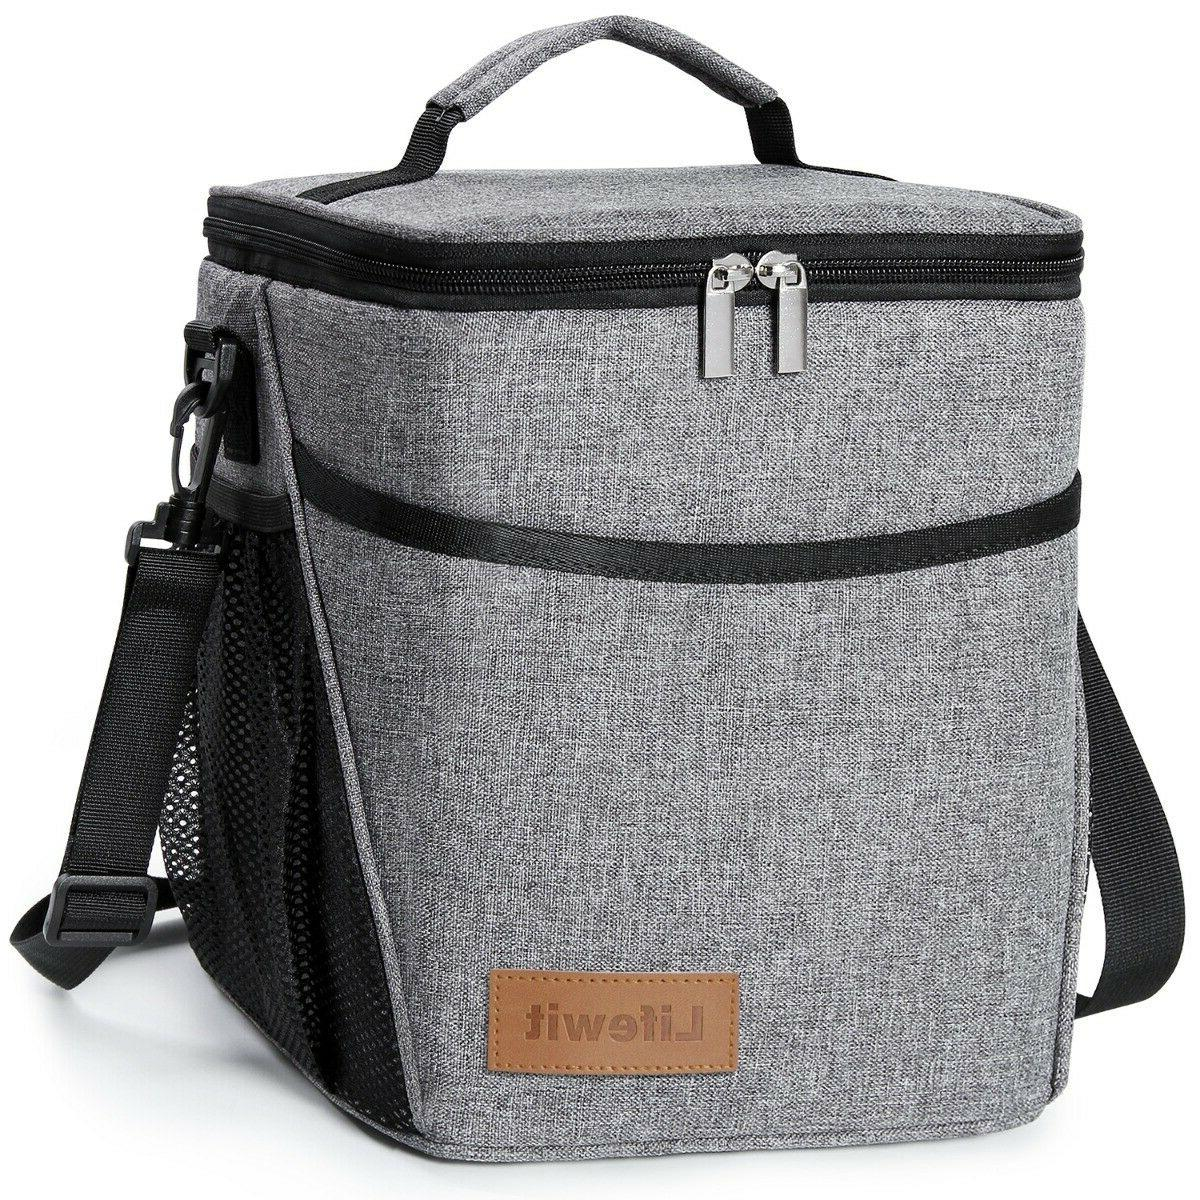 9l insulated lunch bag for women men